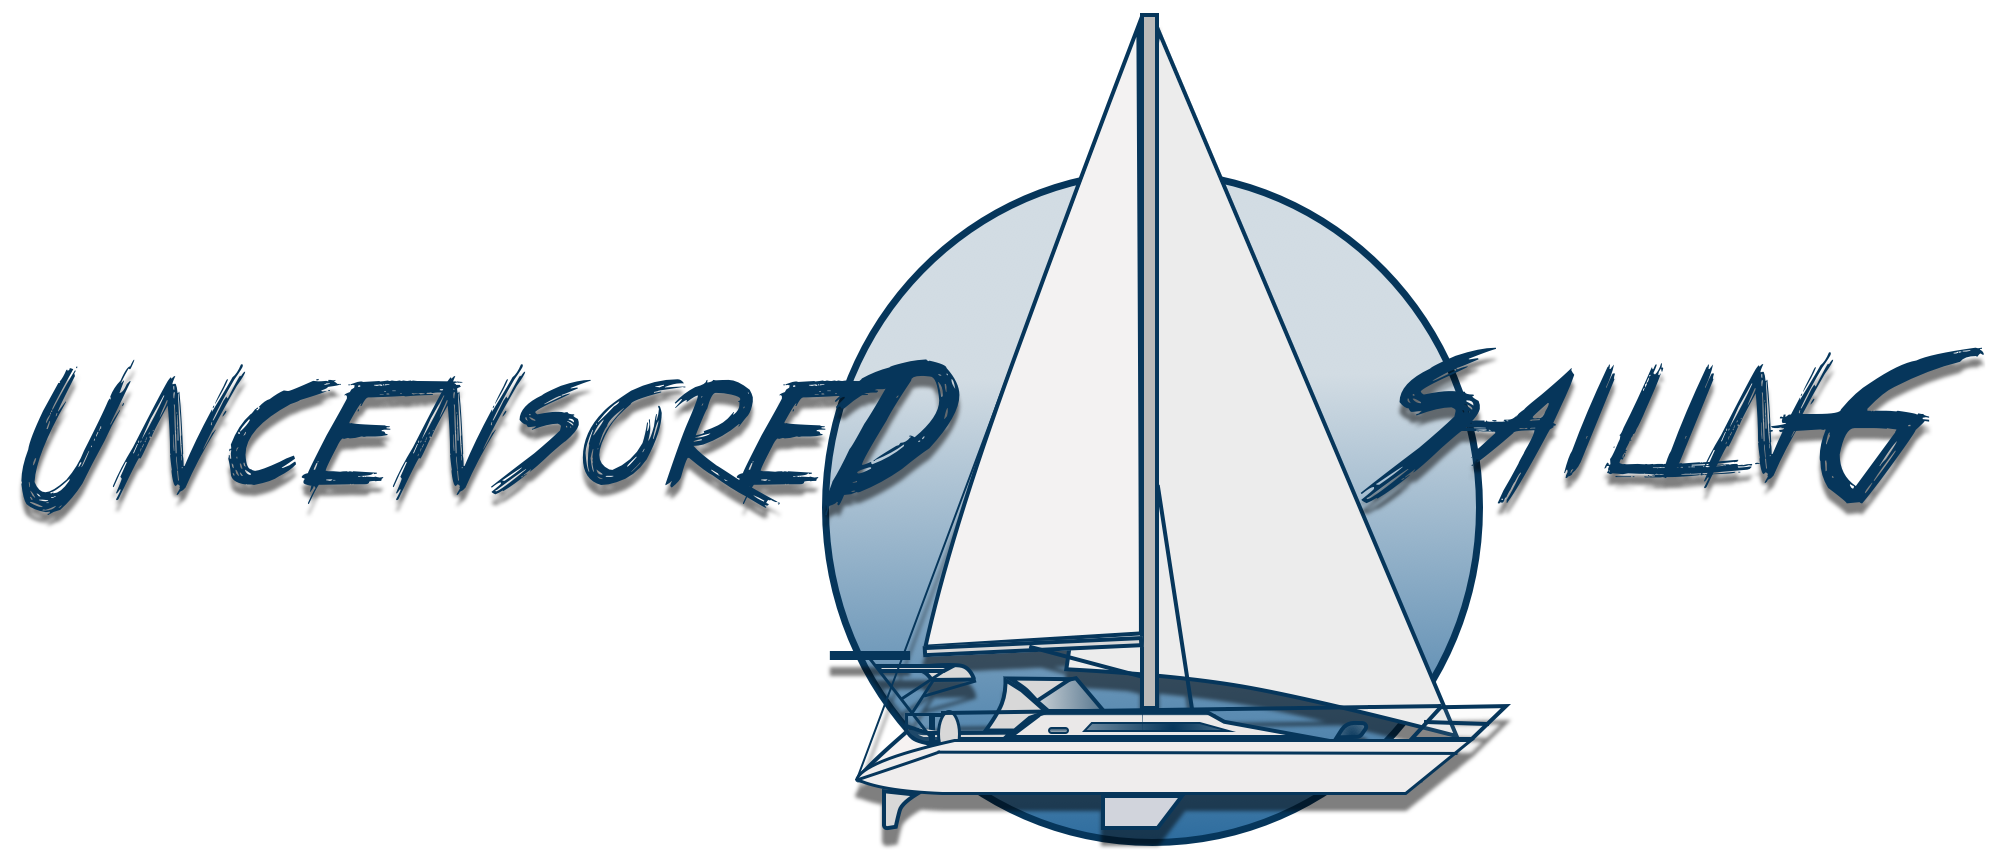 Uncensored Sailing